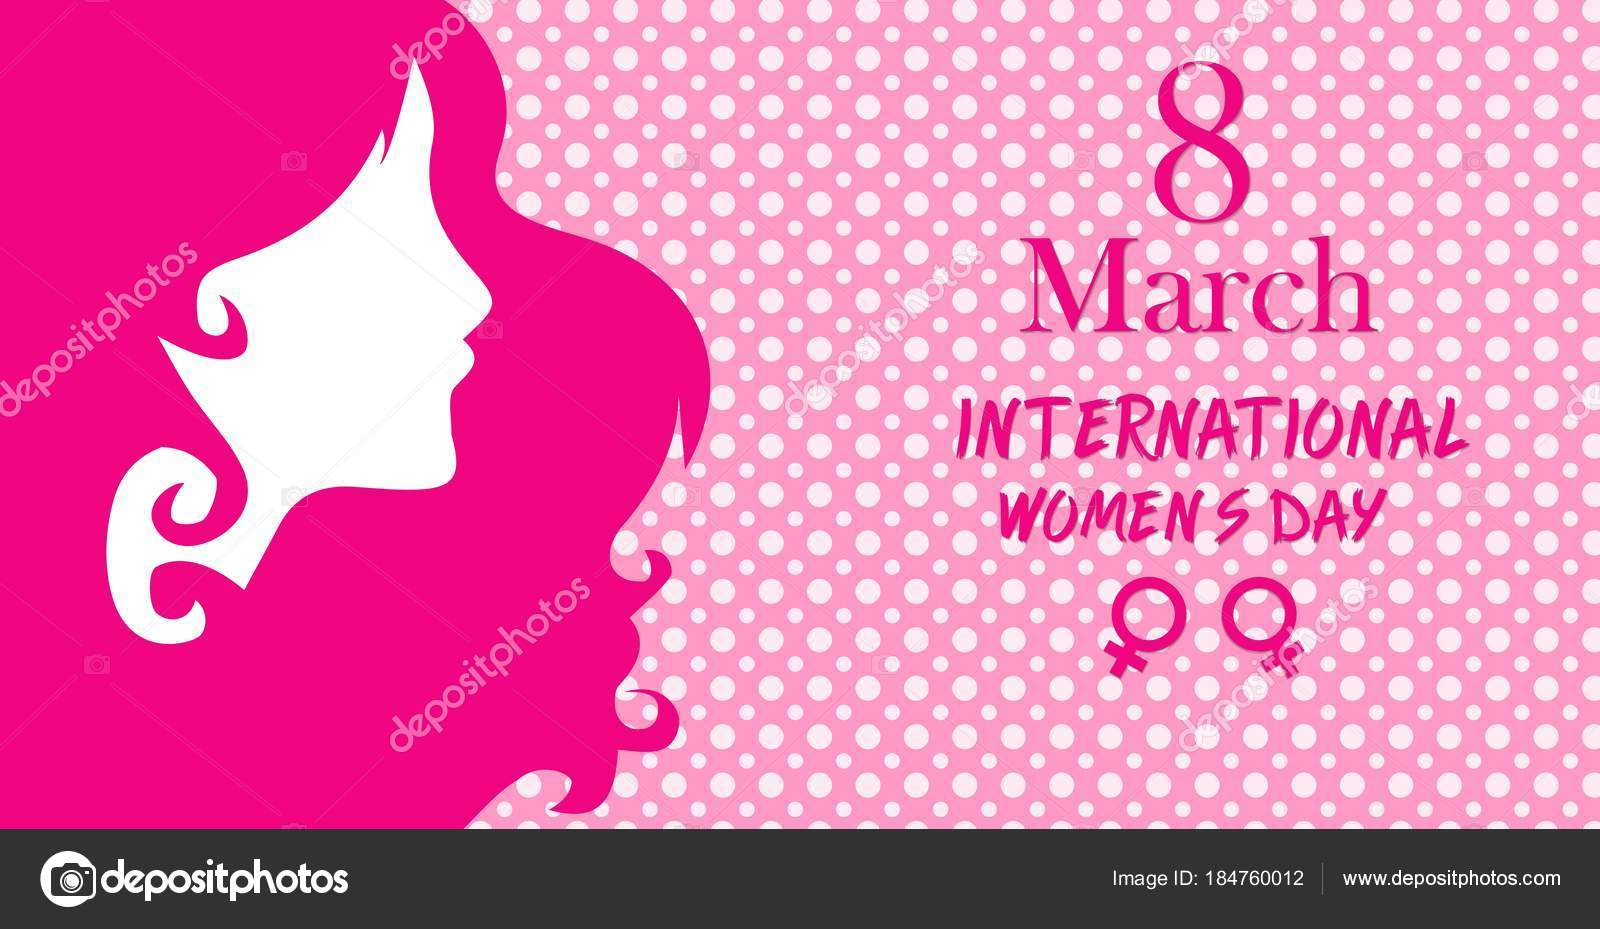 Happy women day greeting card march international women day greeting happy womens day greeting card 8 march international women day greeting card women face on pink background vector by sajikinanwaryahoo m4hsunfo